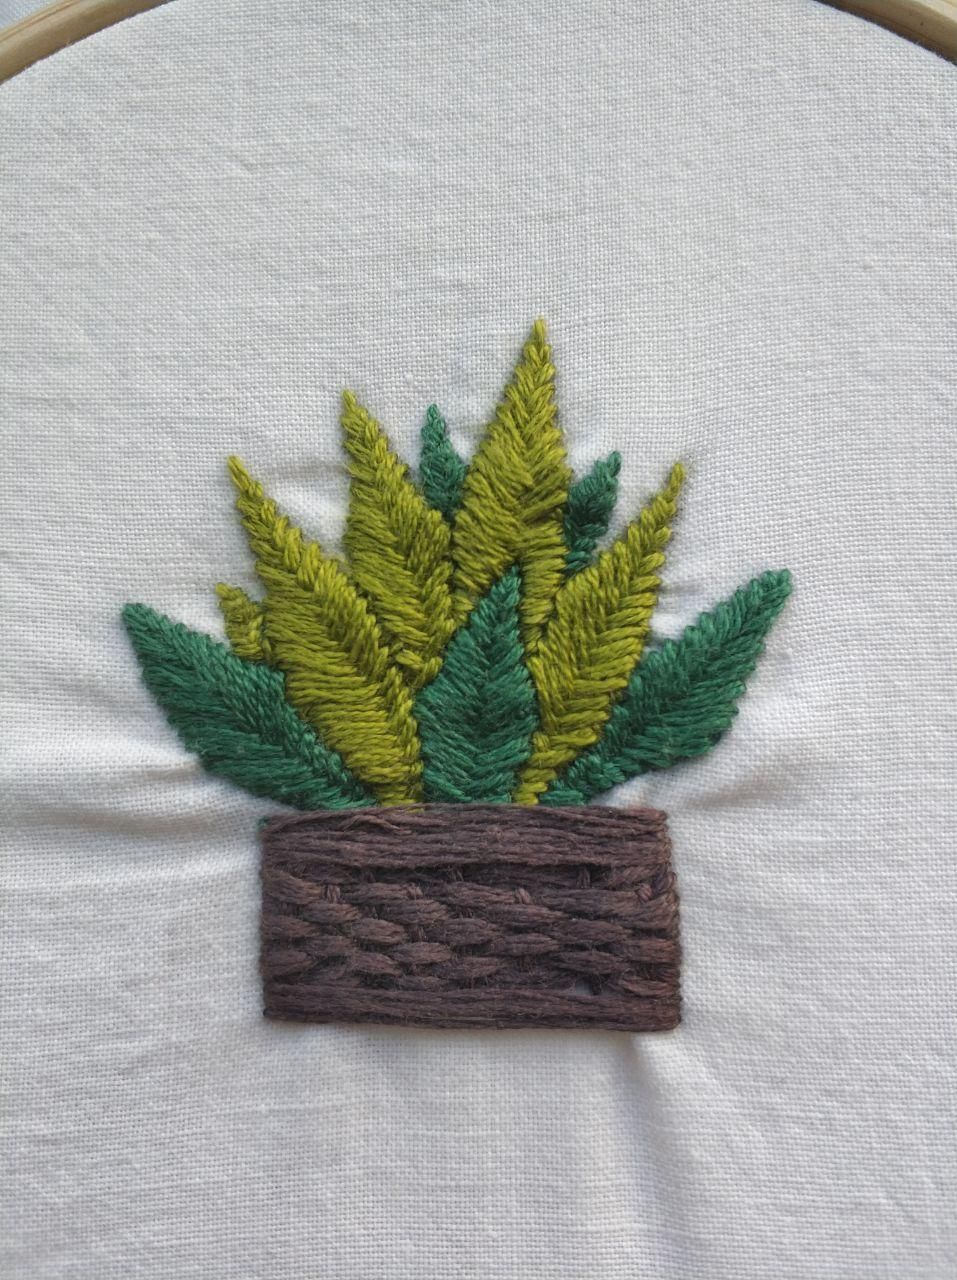 Plant embroidery - image 1 - student project